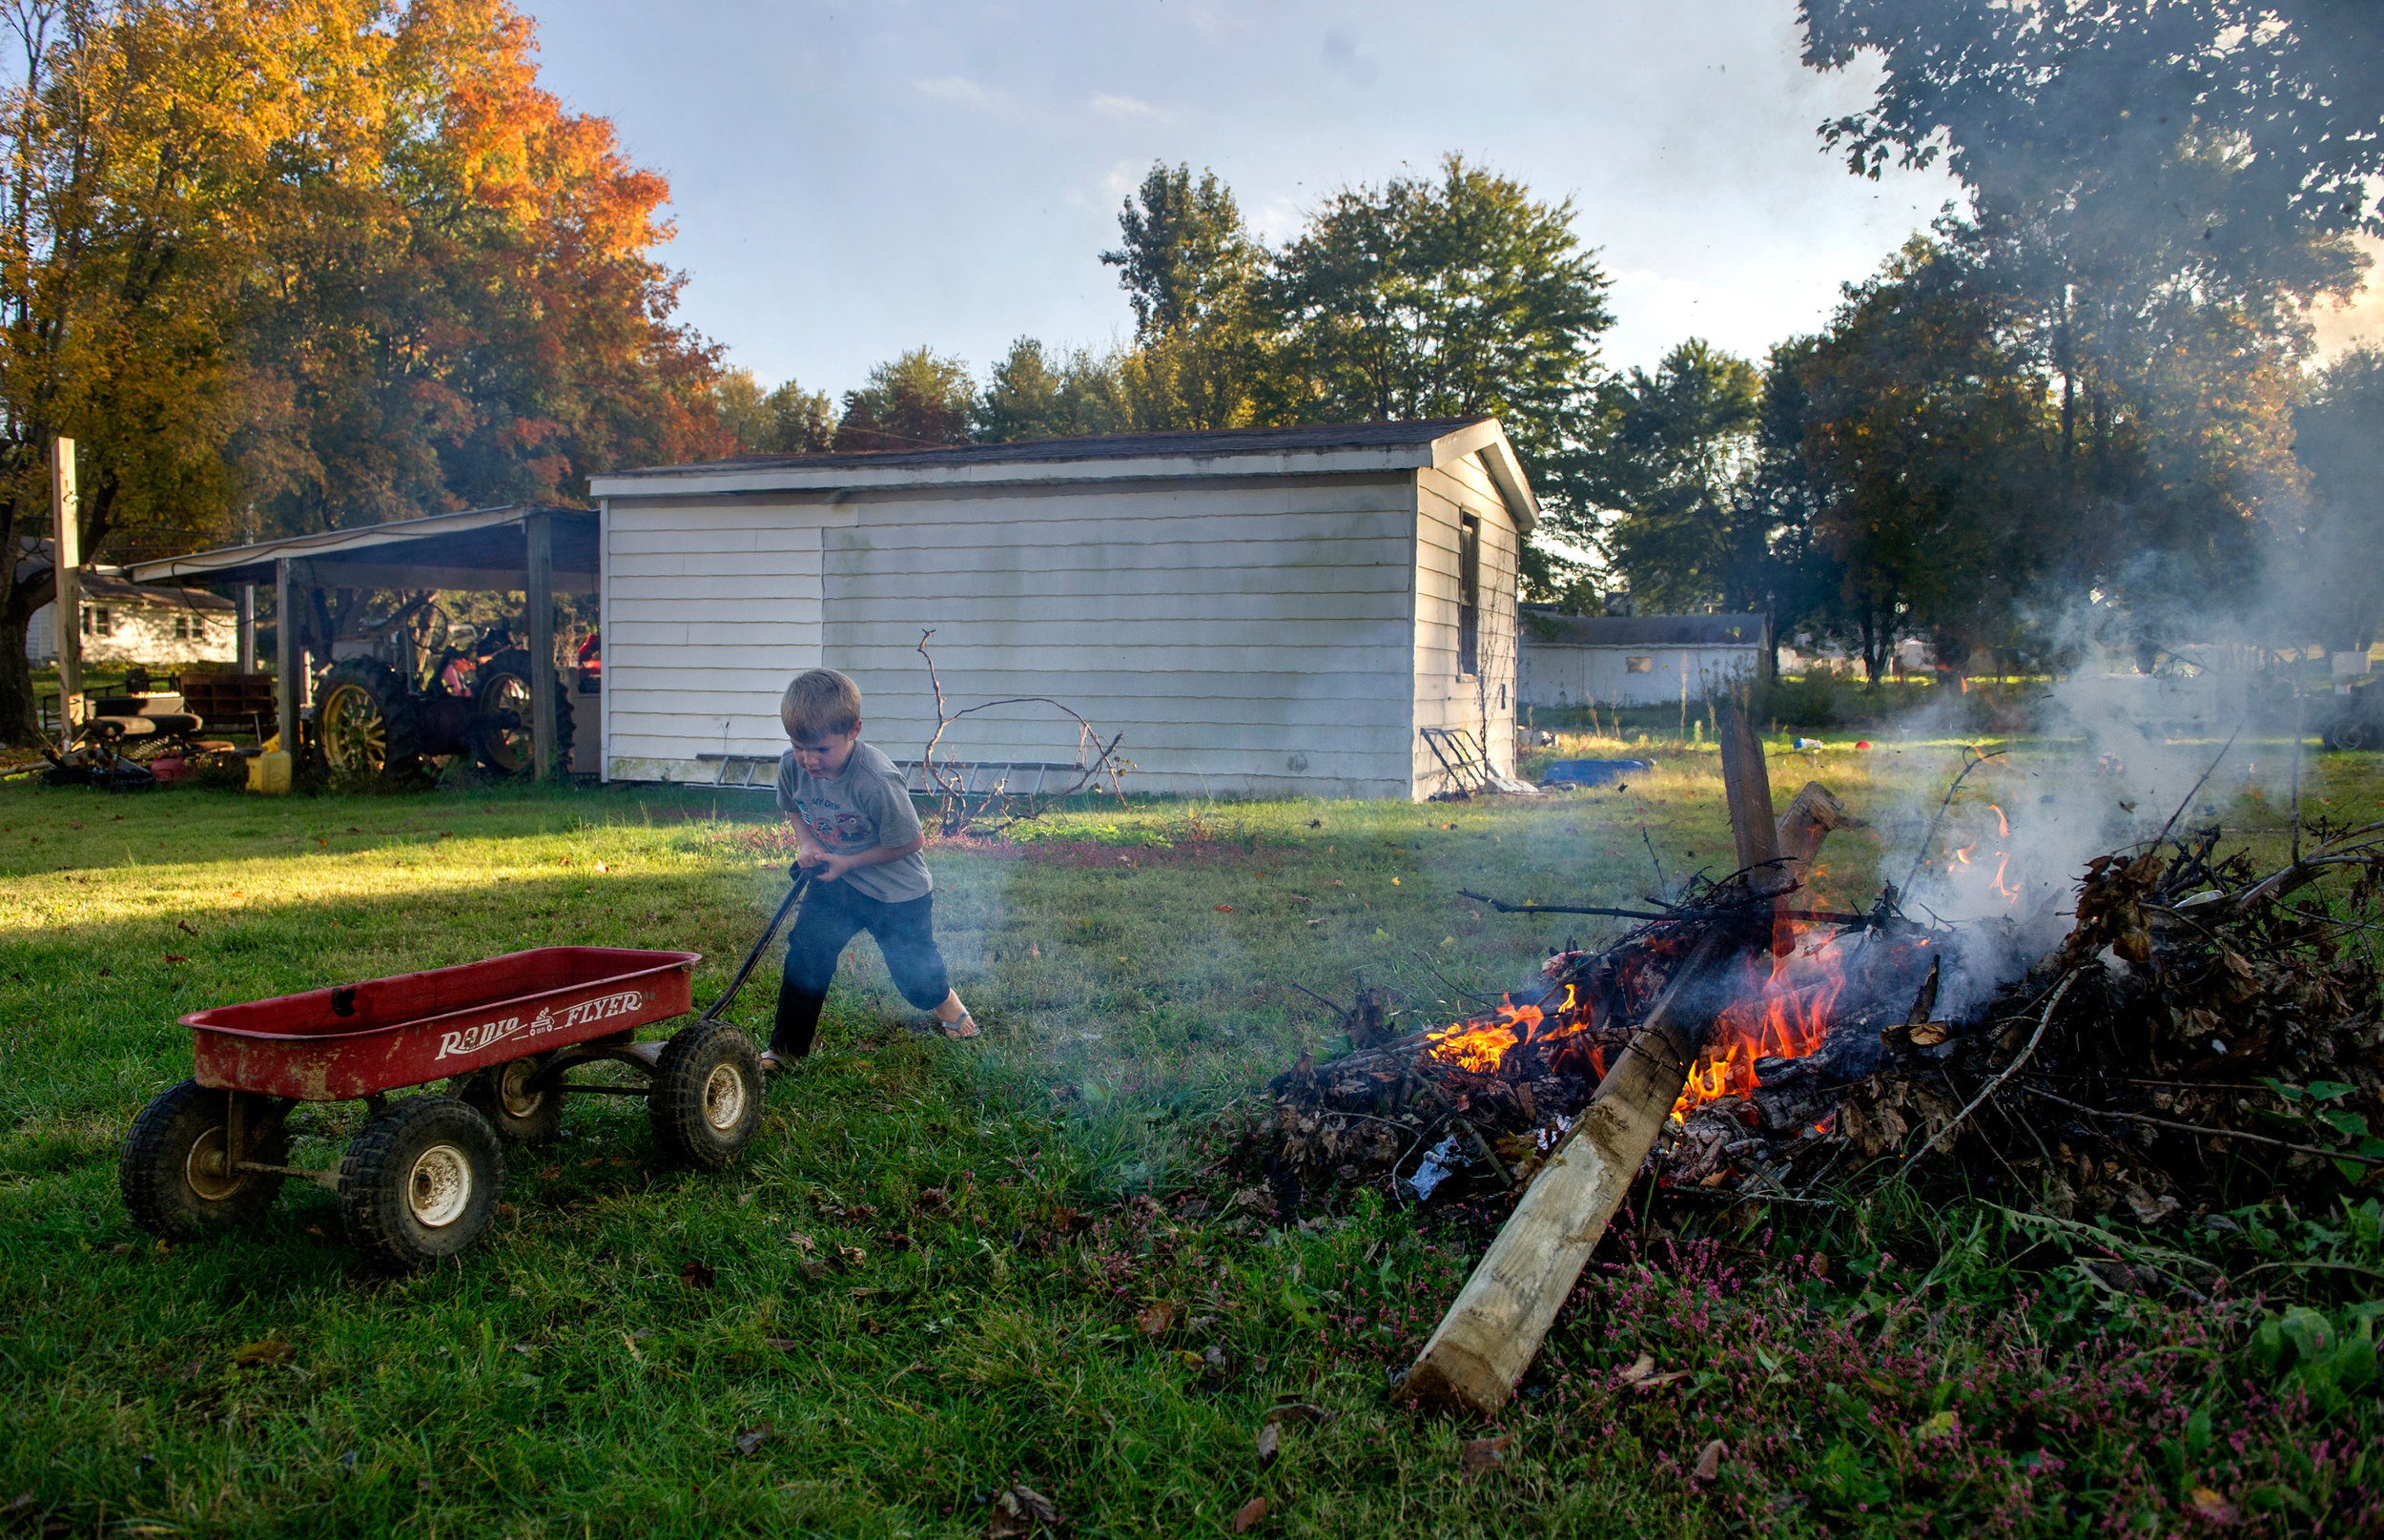 Jayden Patterson of Booneville, 5, collects sticks to burn in a fire at his home in Booneville, Ind. Thursday, Oct. 17, 2014.